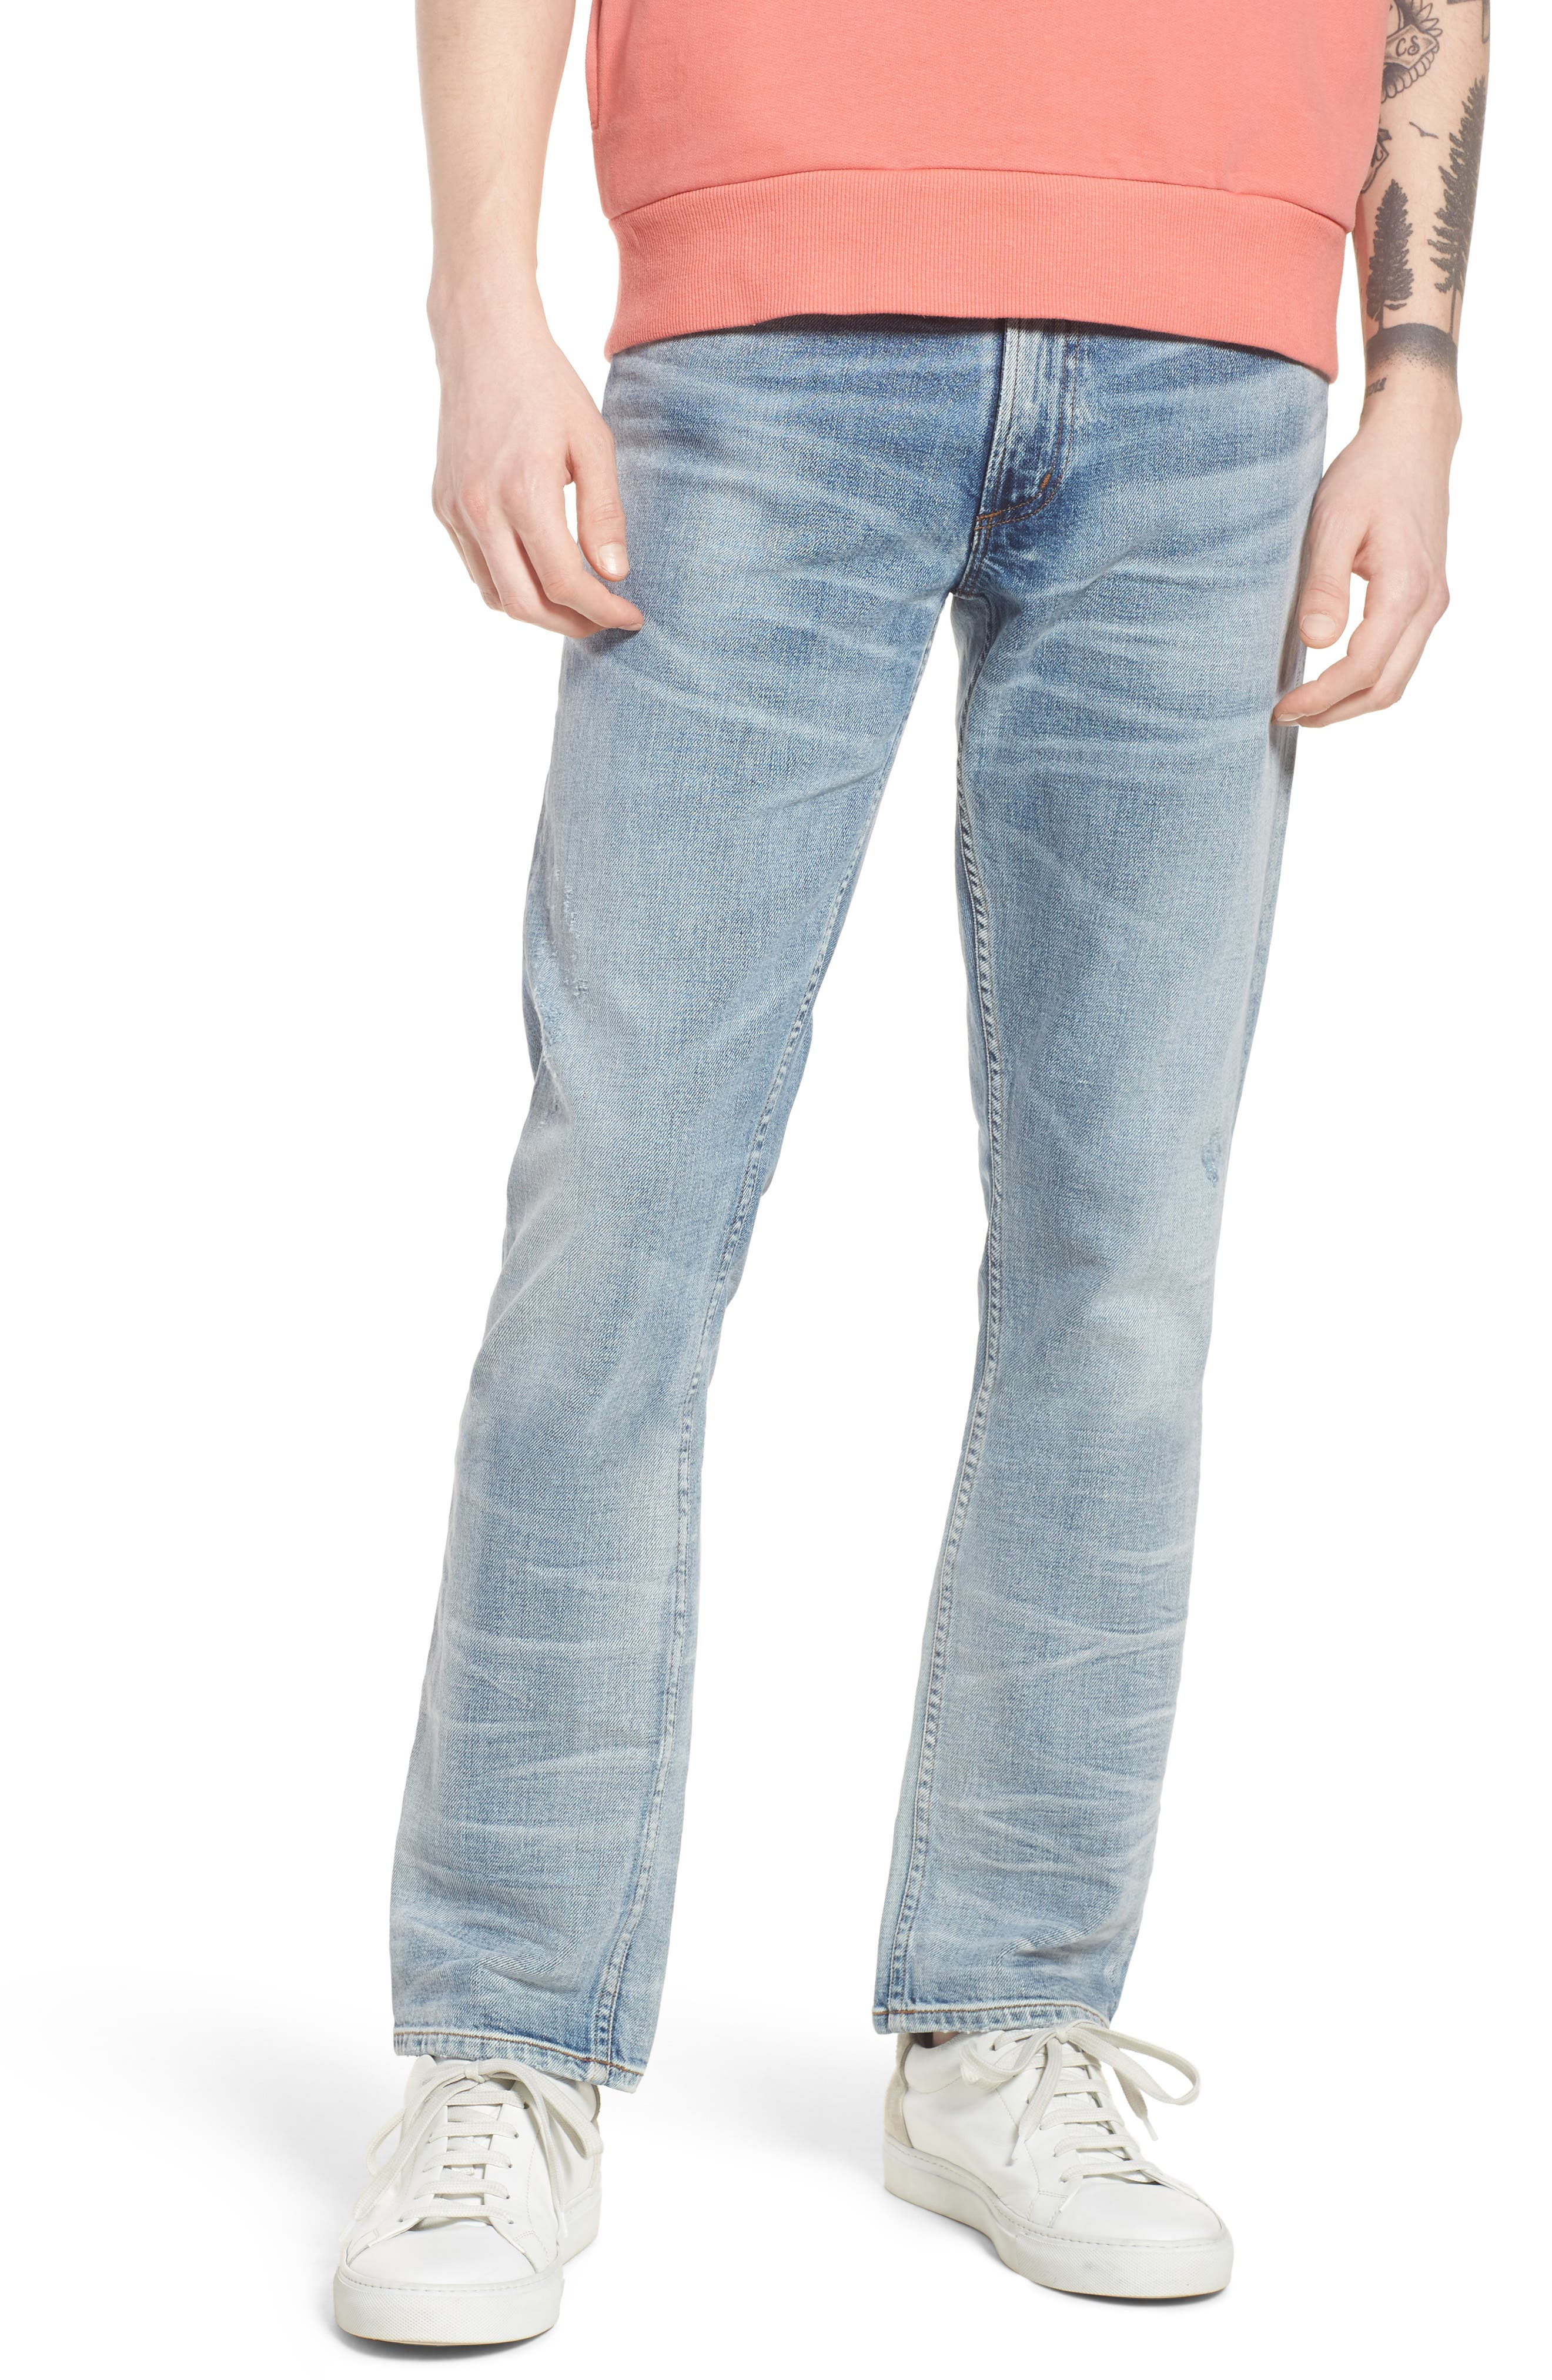 Bowery Slim Fit Jeans,                         Main,                         color, Lone Pine